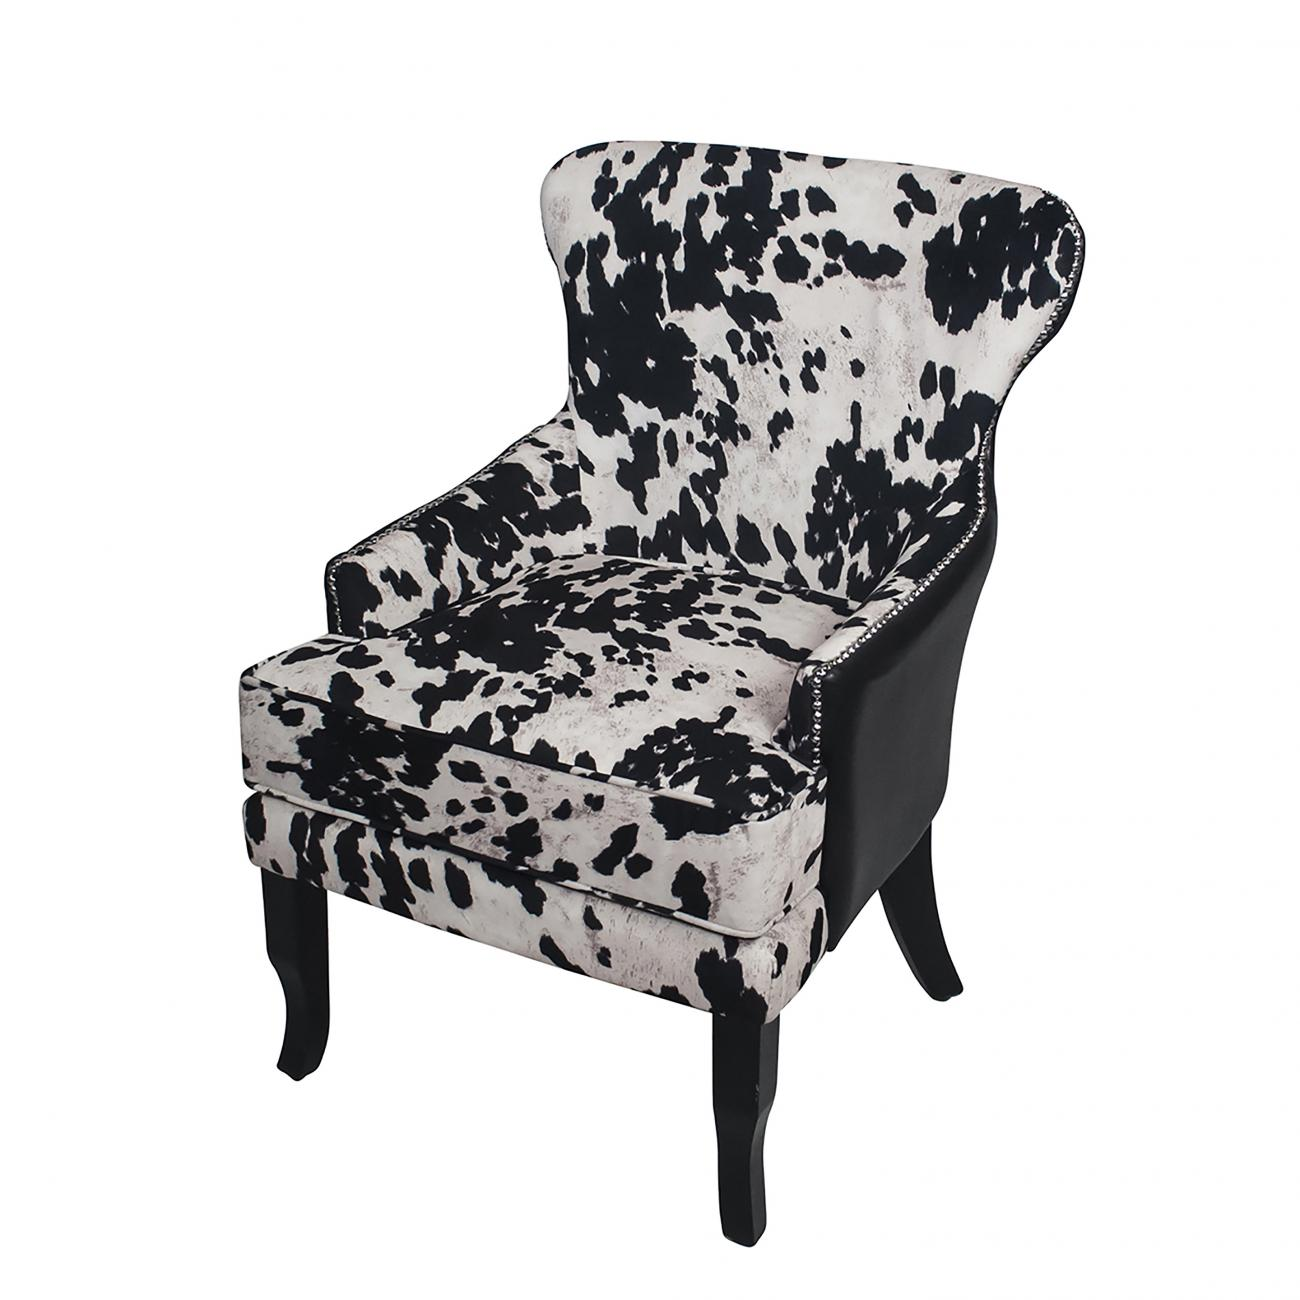 Cowhide Chair Newport Tent Company